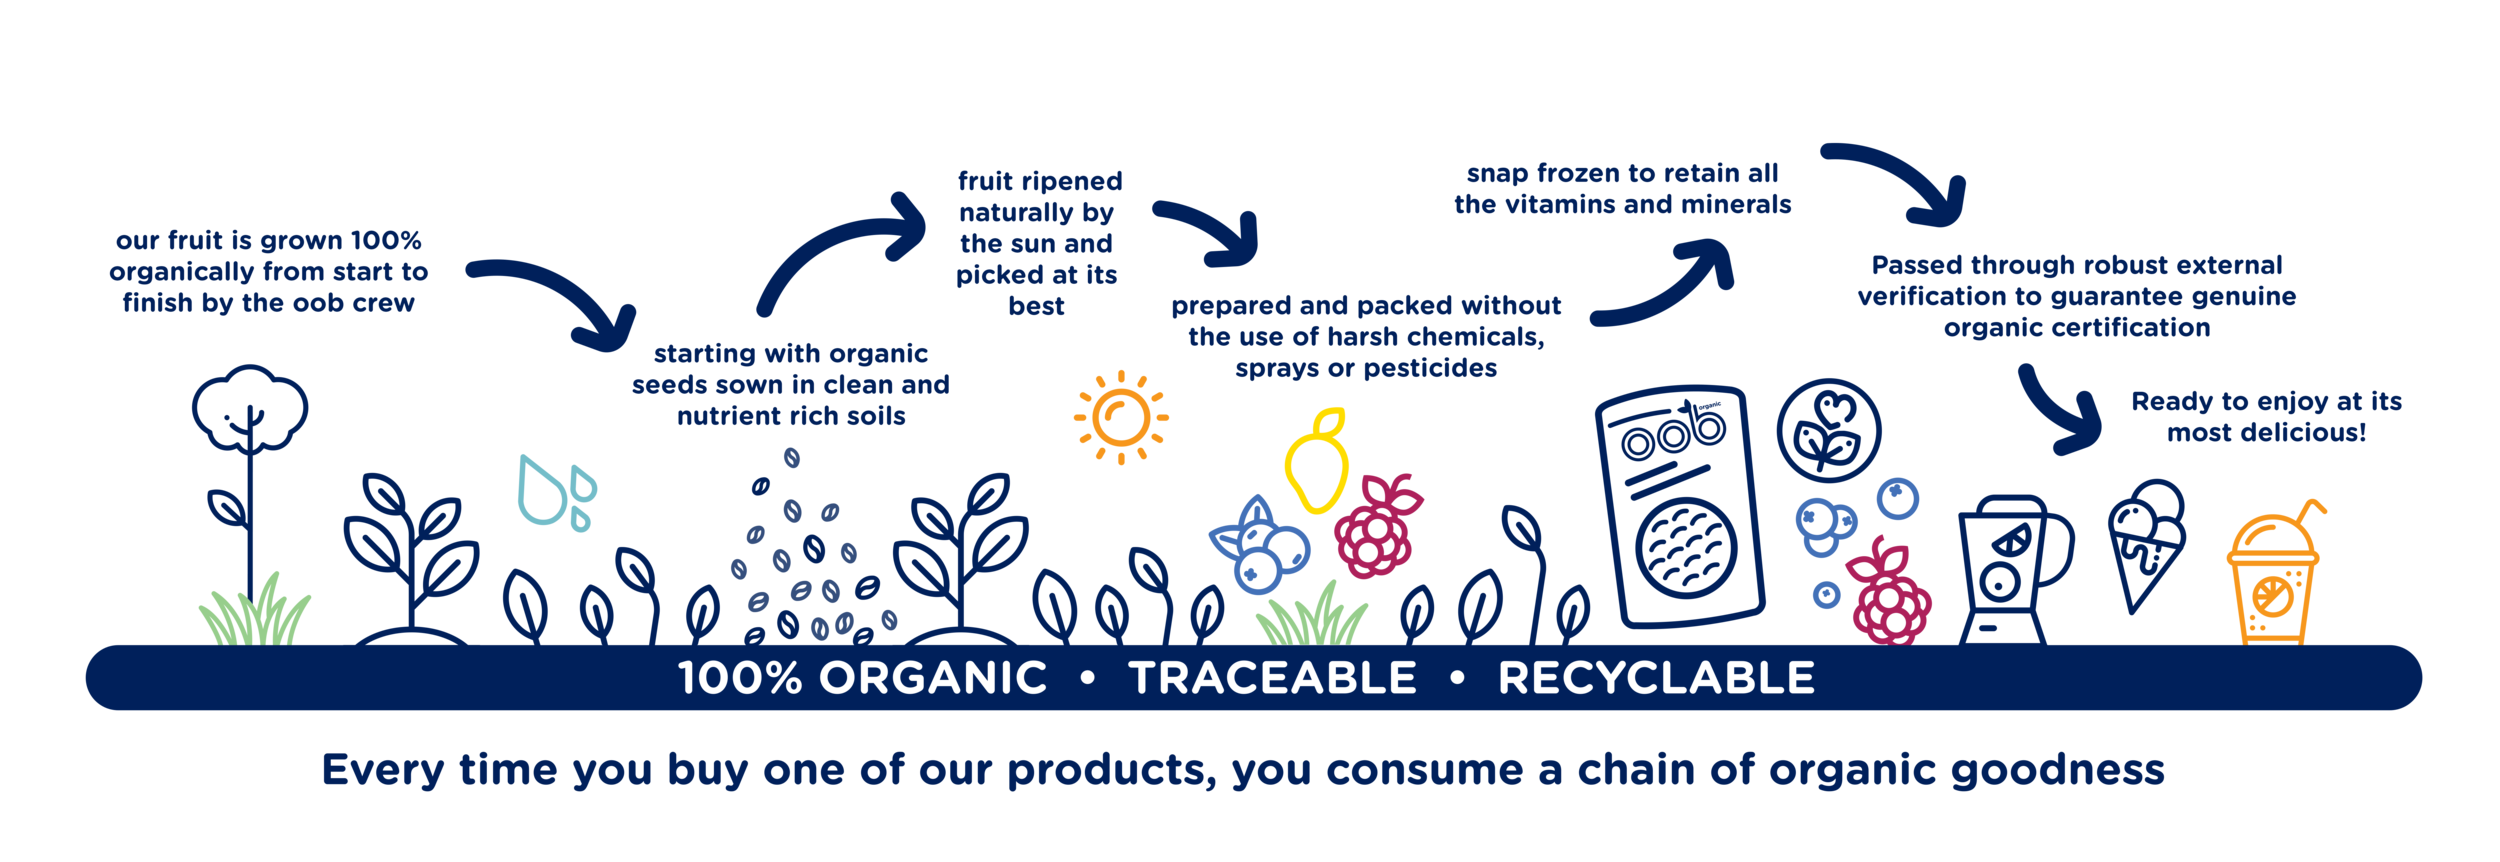 the organic production chain.png